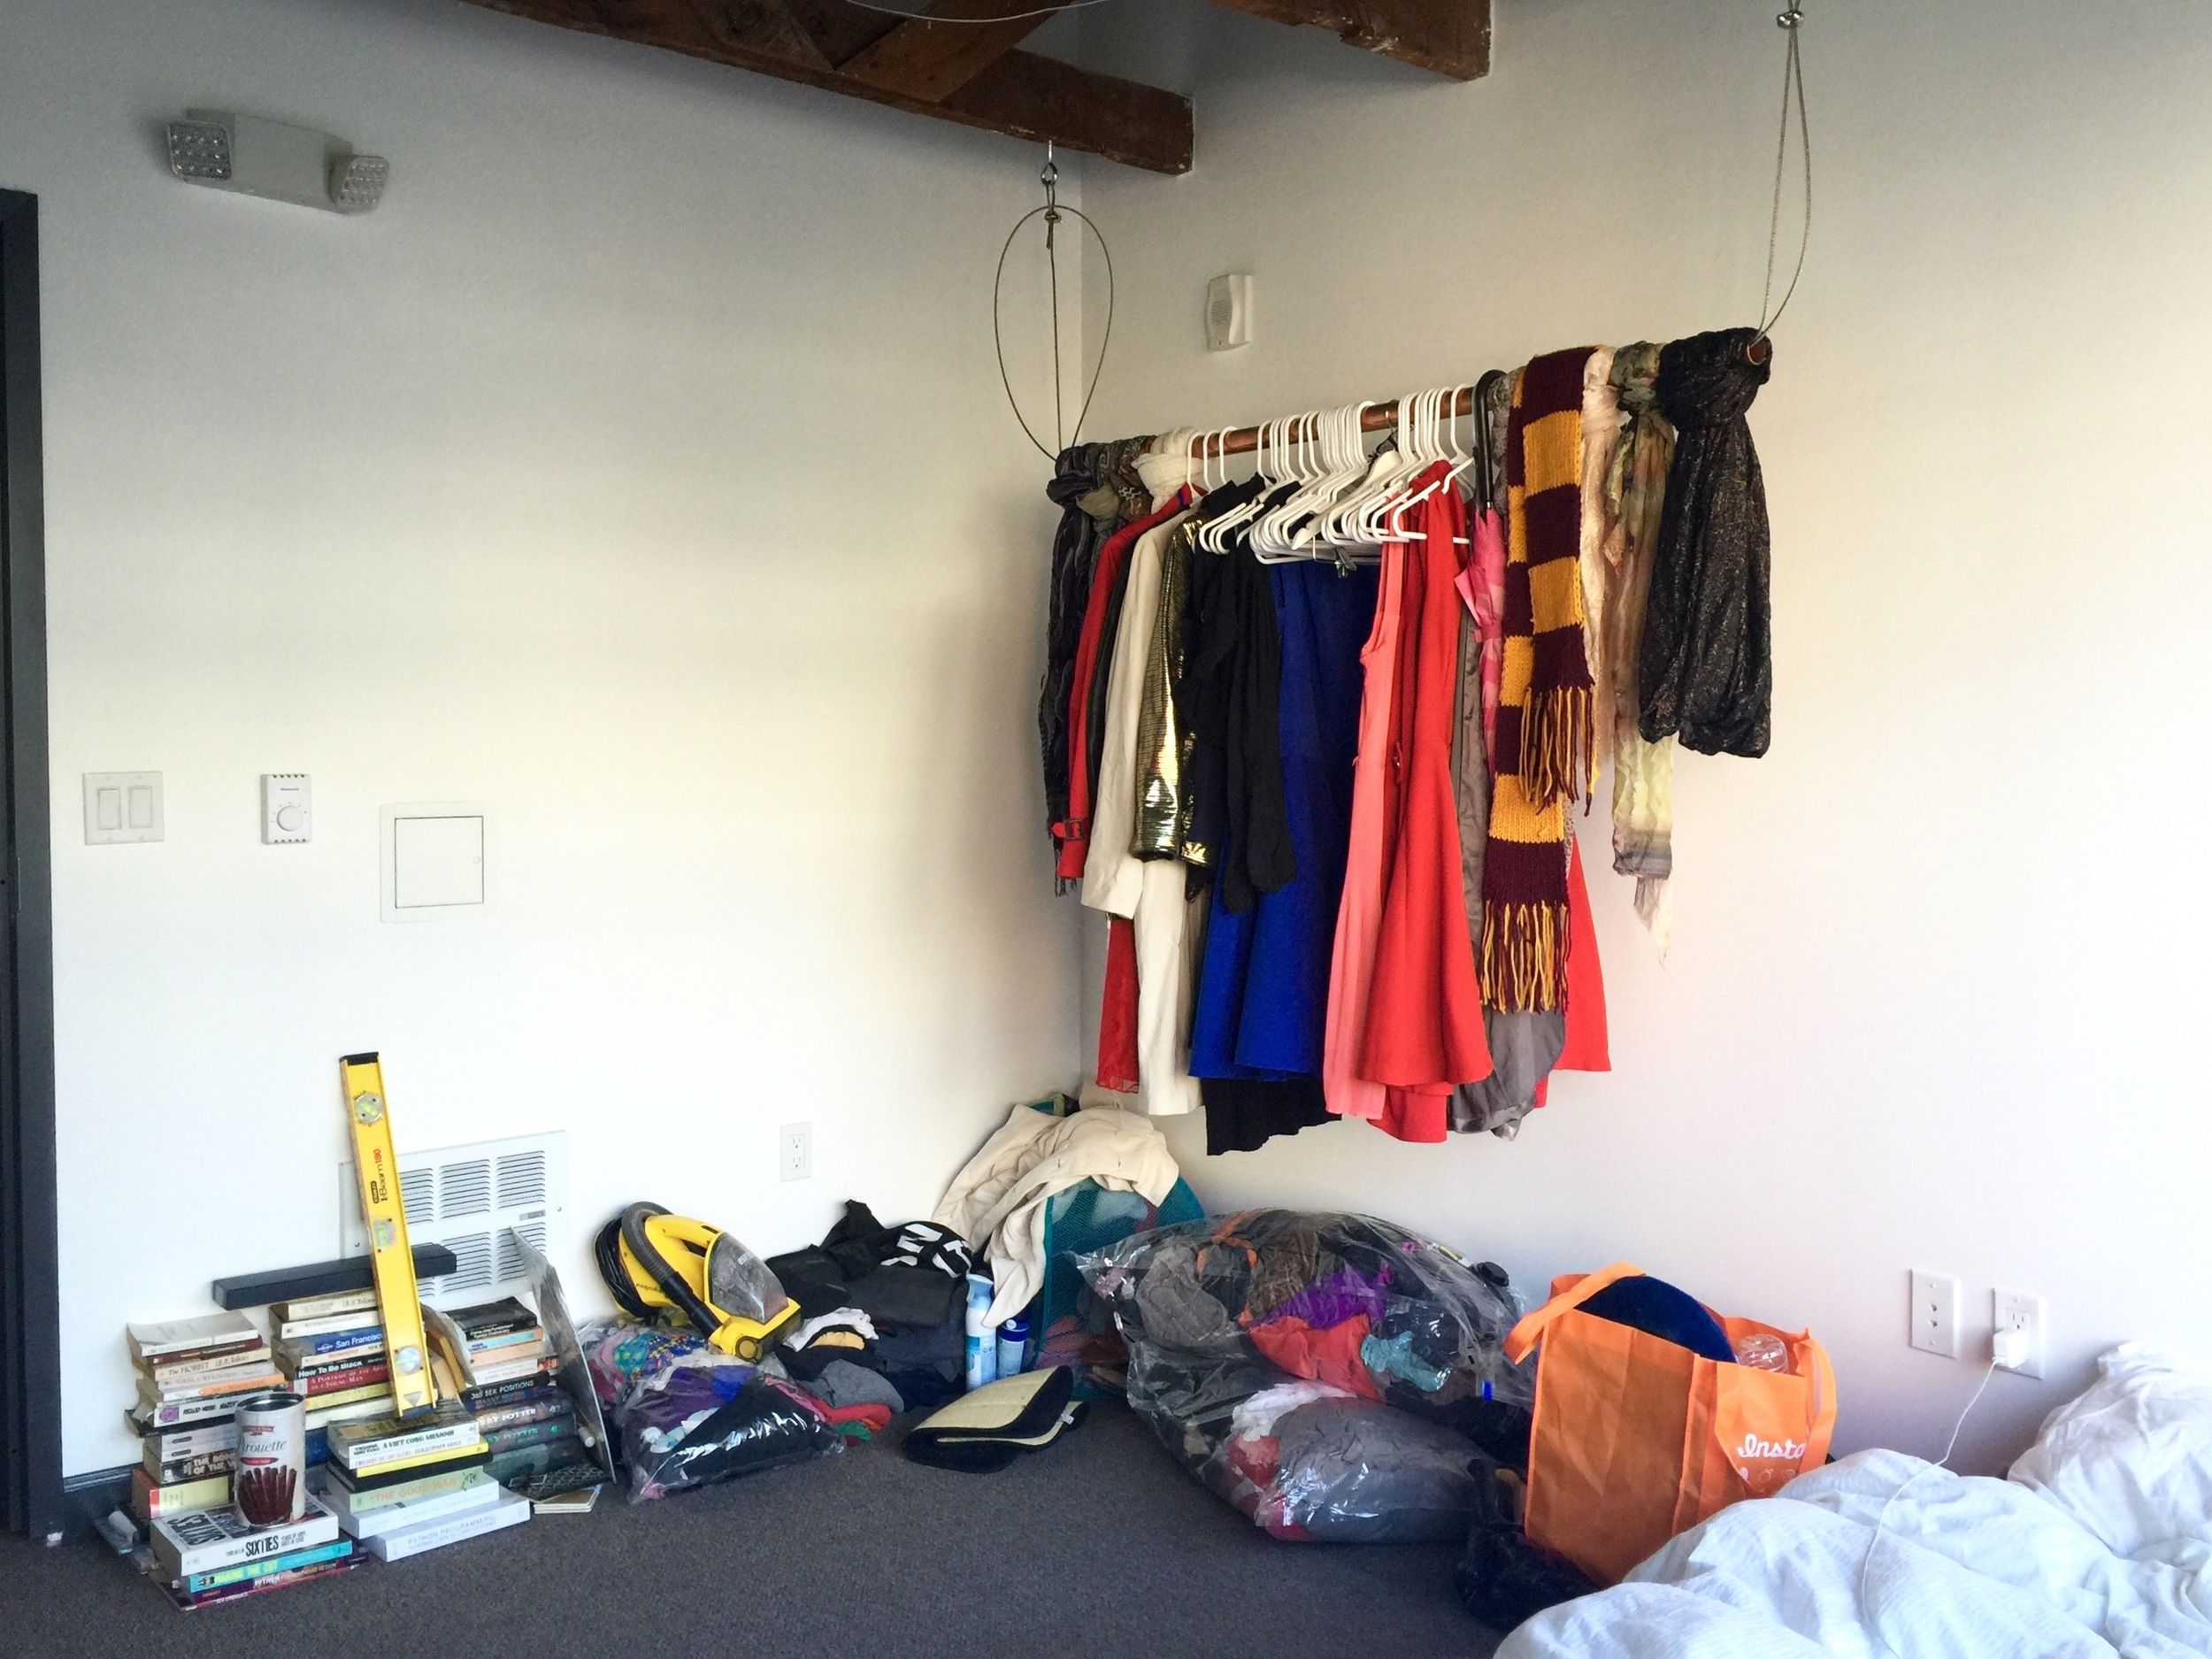 Remaining clutter